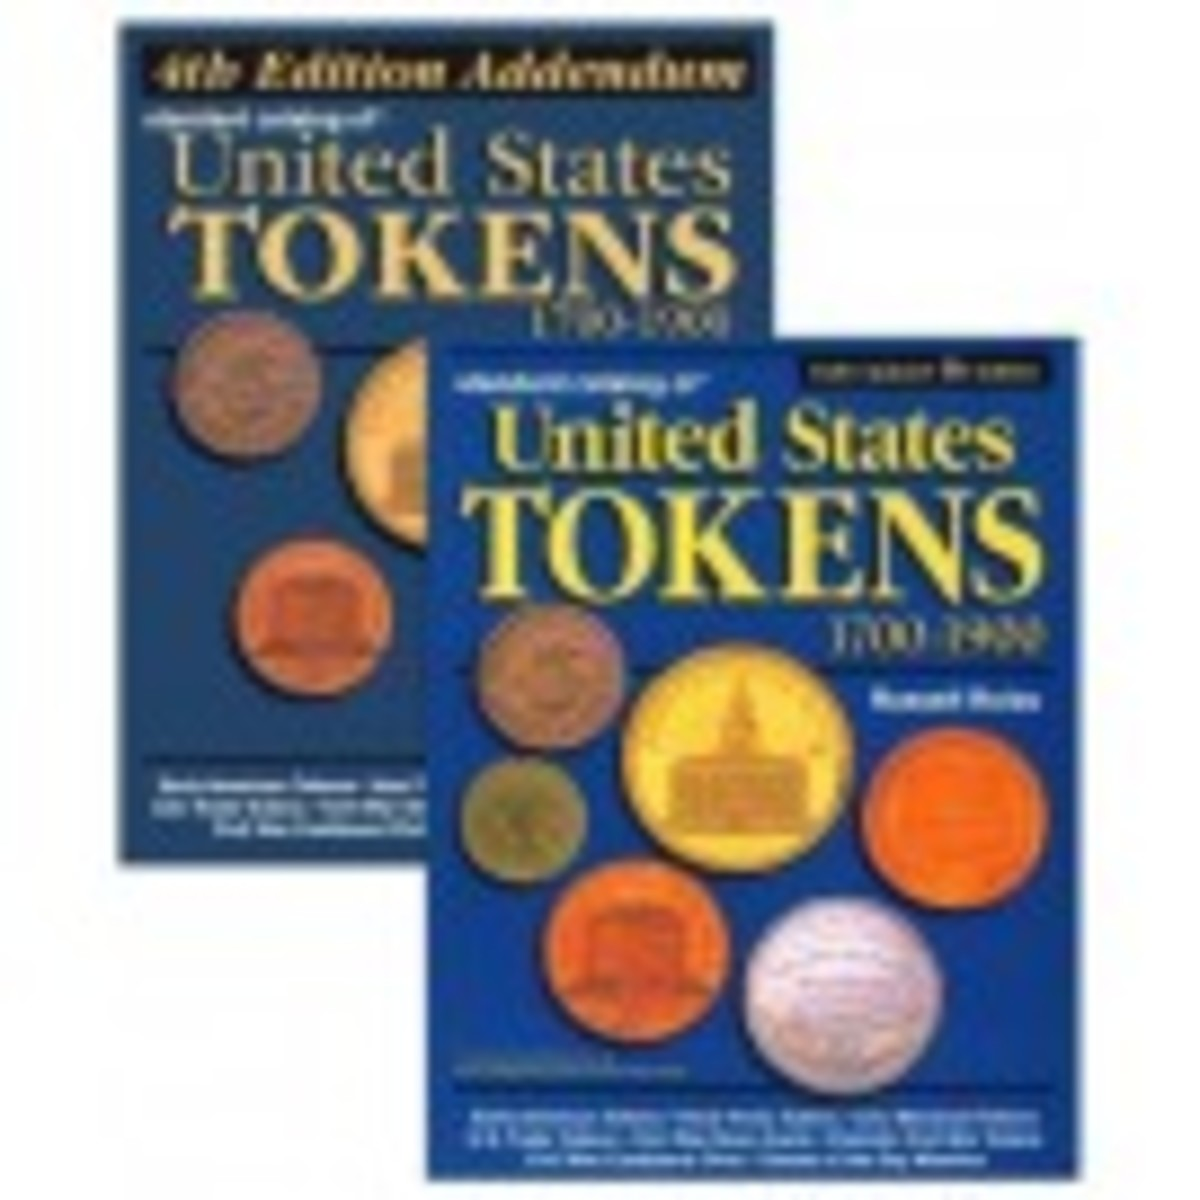 Standard Catalog of United States Tokens Download Duo